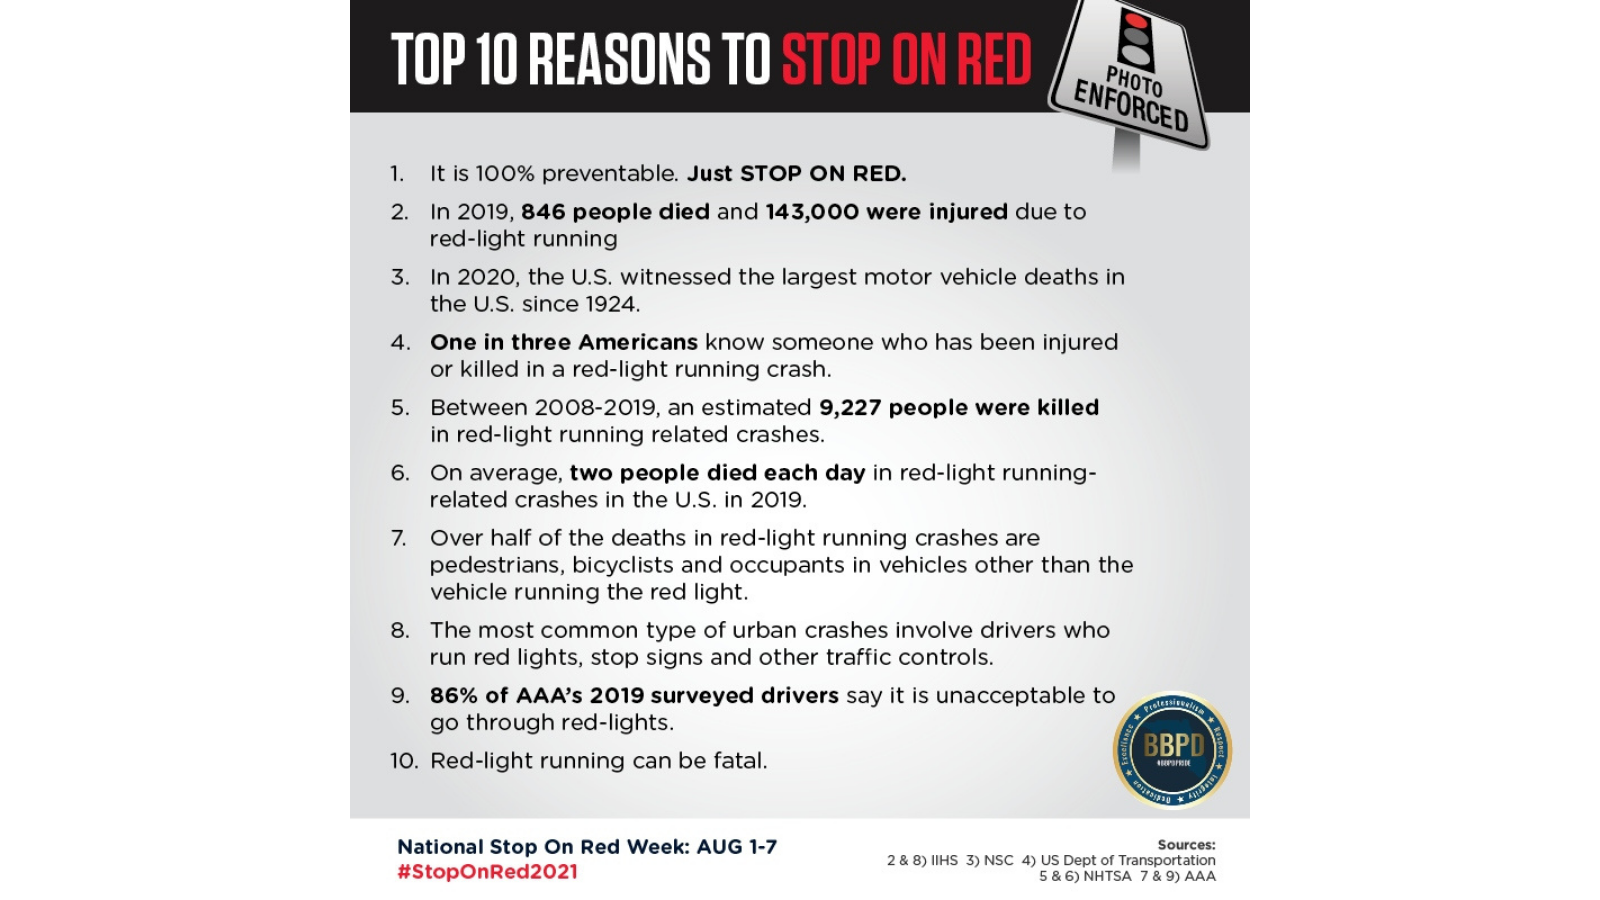 List of reasons to Stop on Red